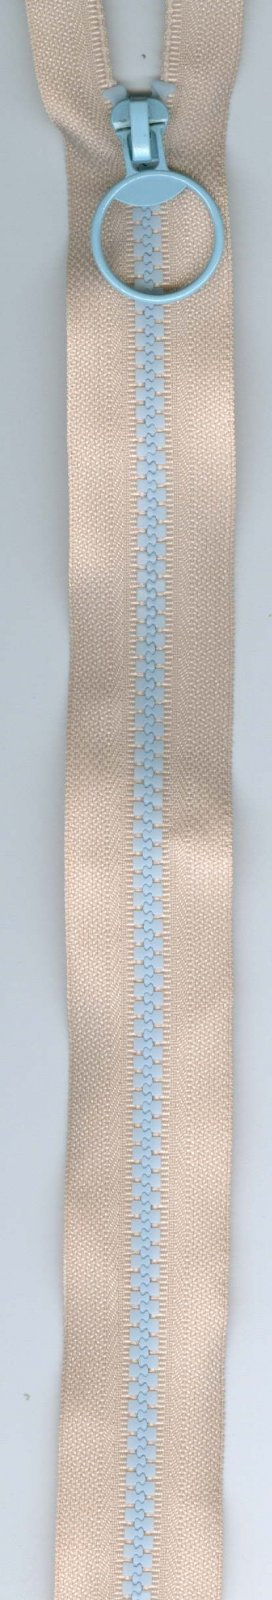 16 Separating Zipper #5 - Light Pink with Blue Teeth